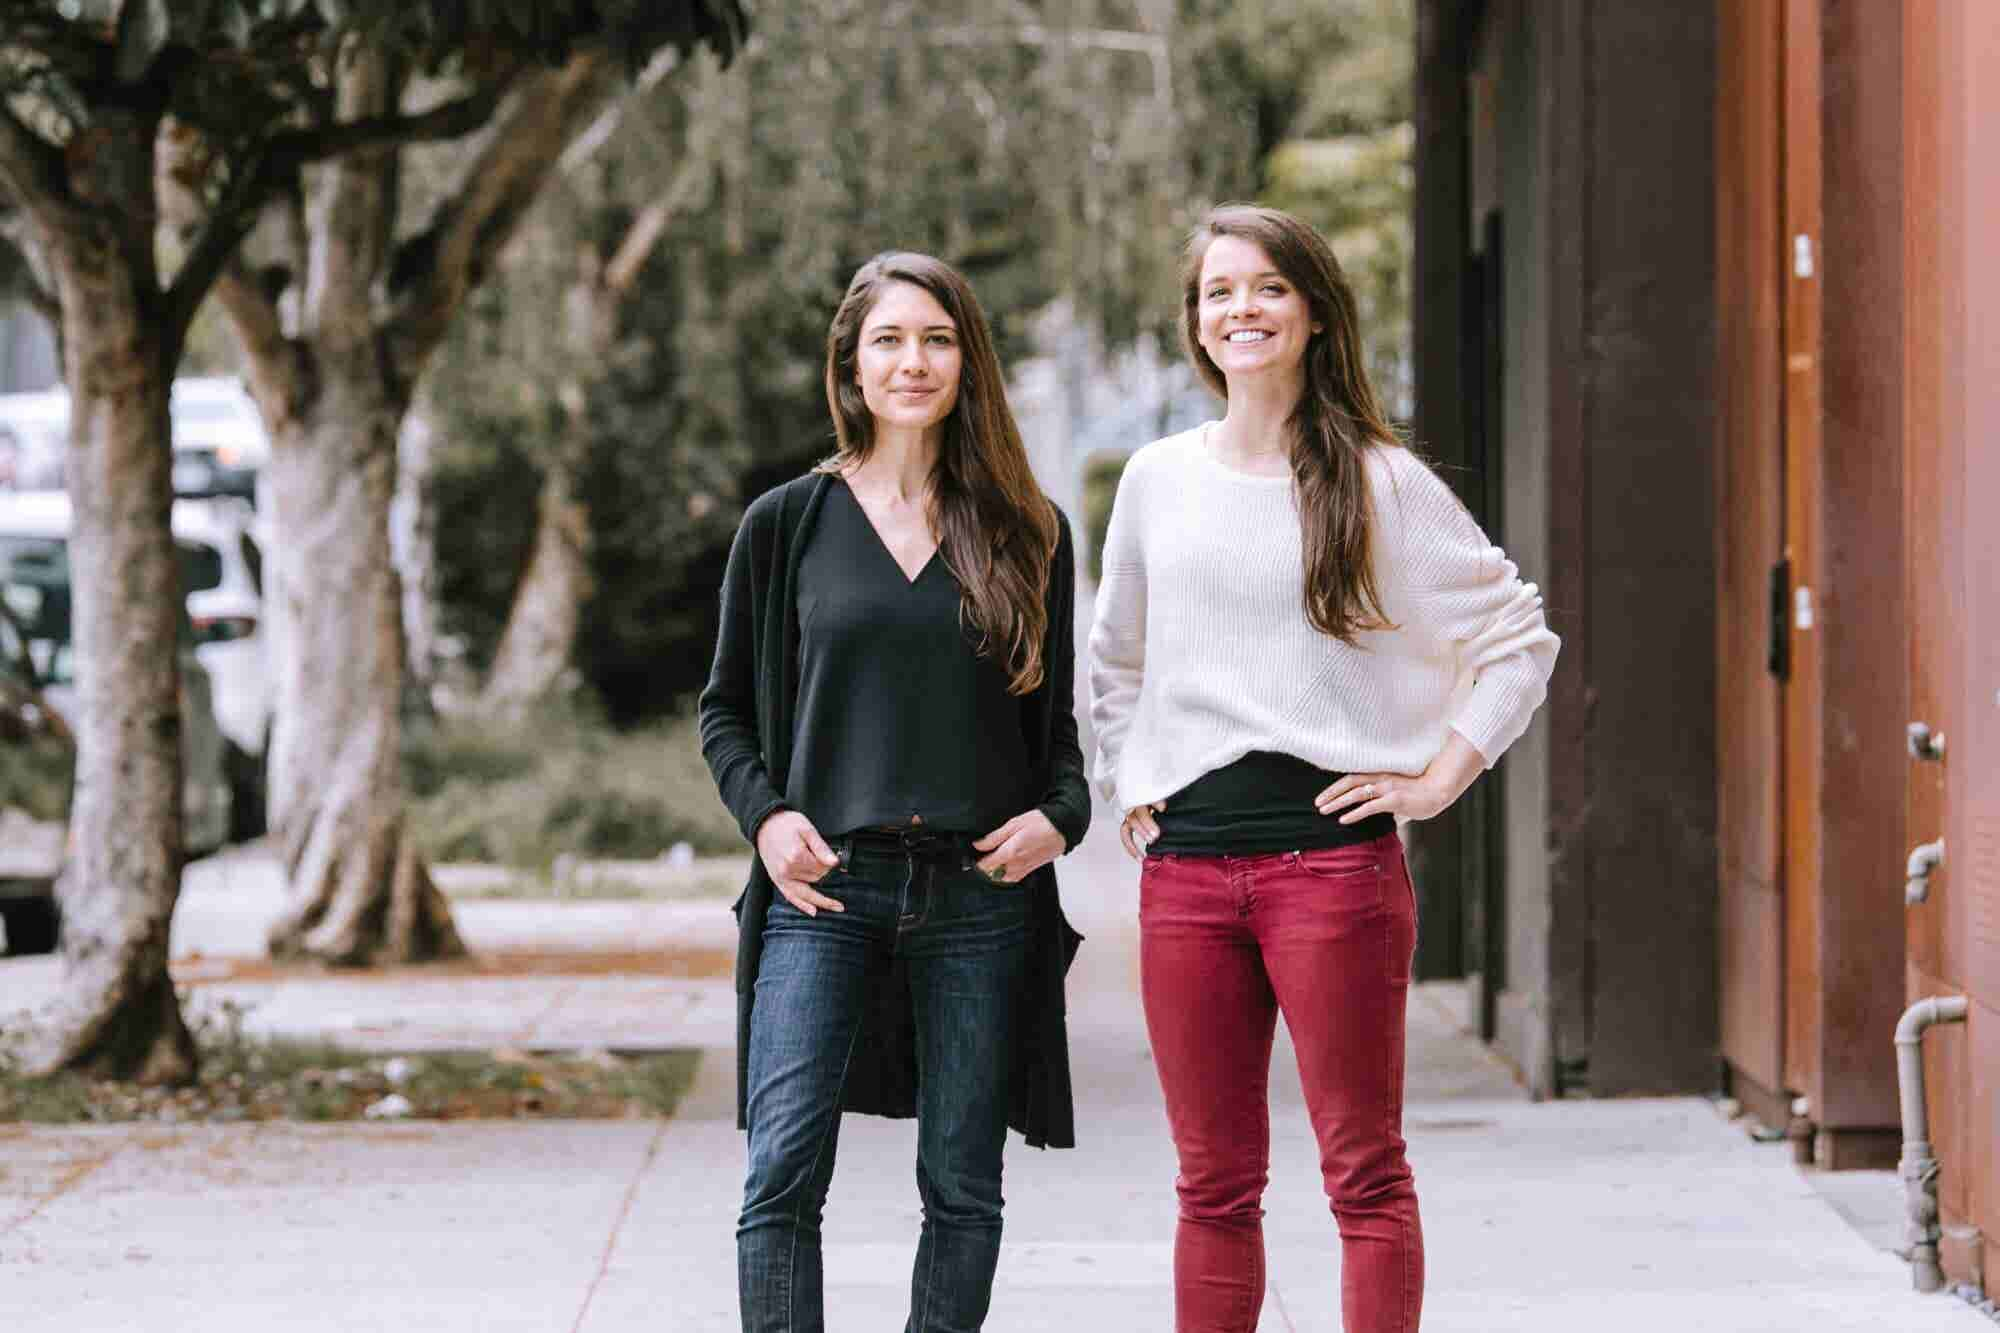 'We Built This Company List By List,' Says the Co-Founder of This At-Home Fertility Testing Startup